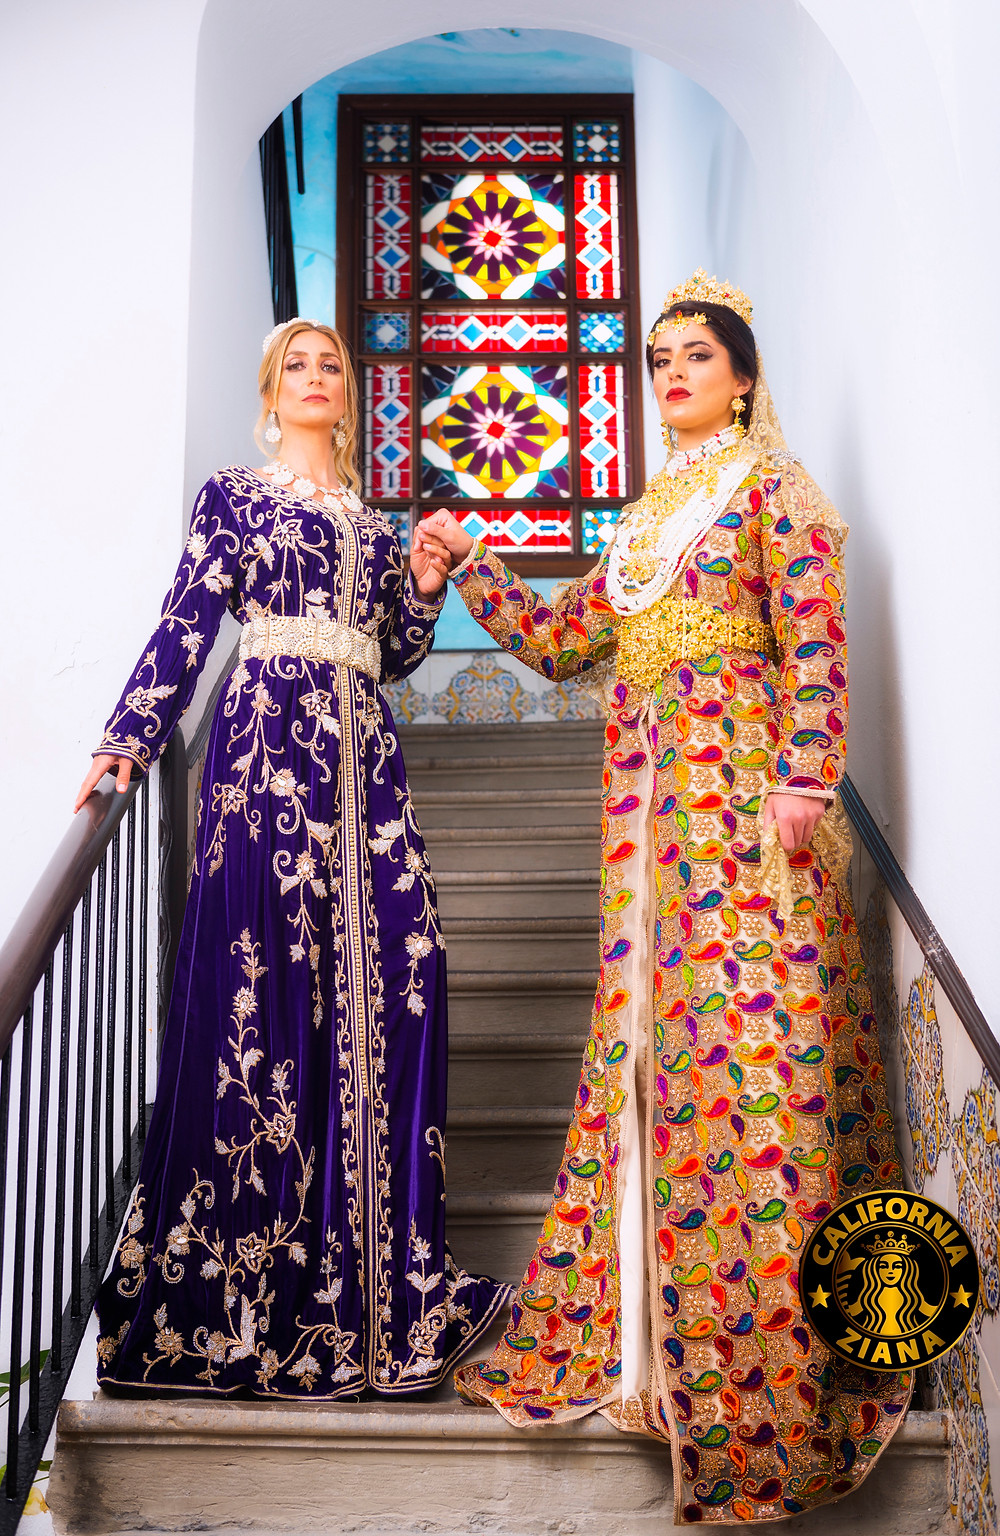 Two models in kaftan dresses photographed by Ben Welsh.